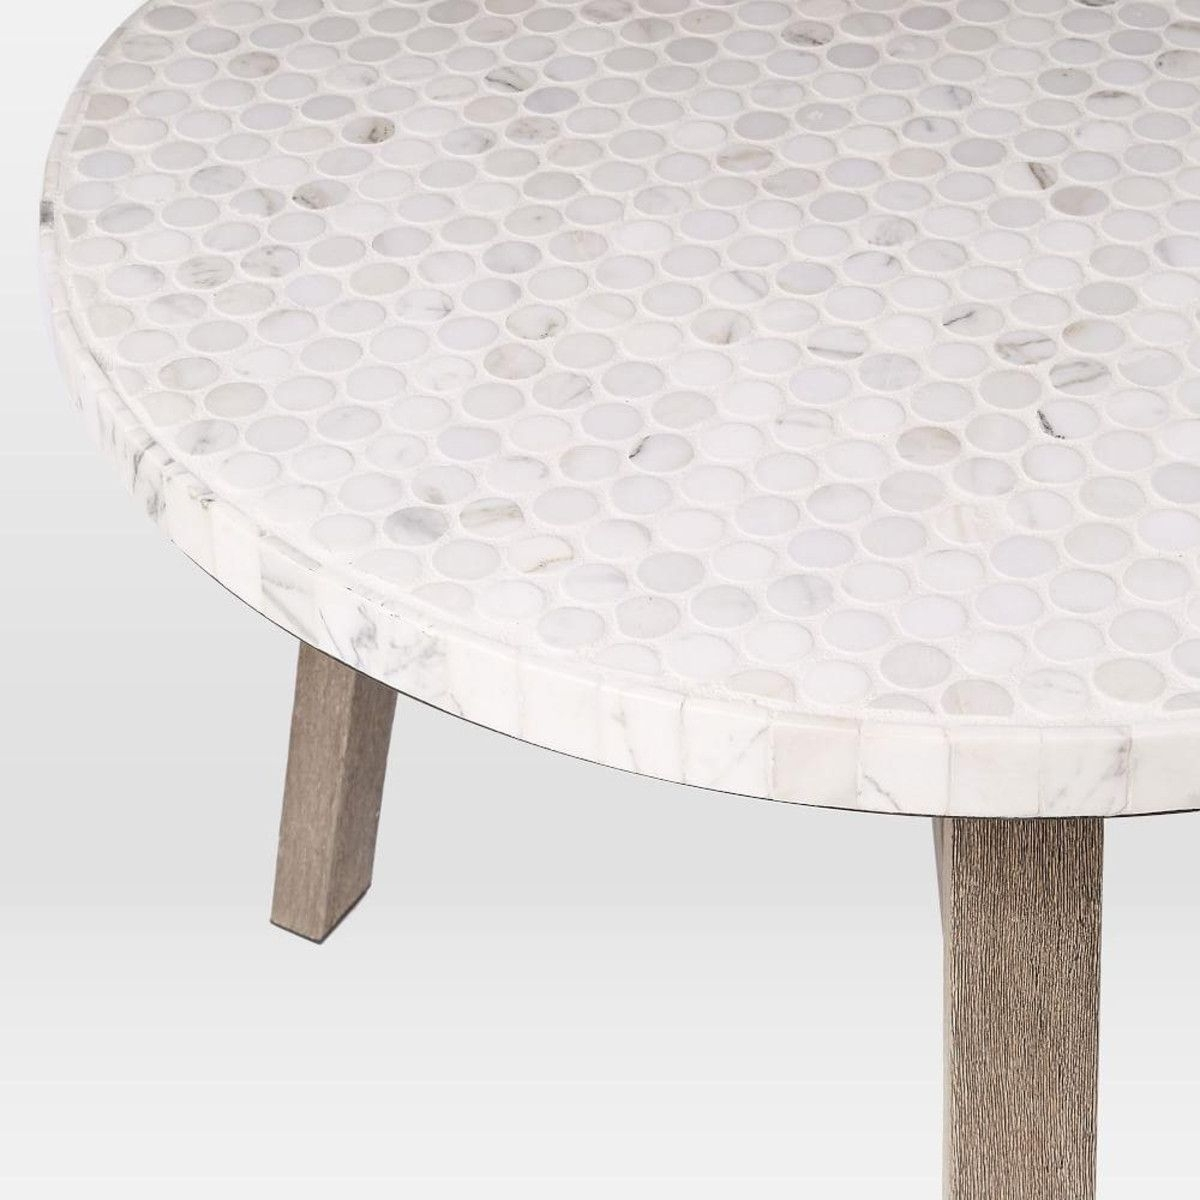 Mosaic Bistro Table - White Marble | Outdoor Area | Pinterest intended for Intertwine Triangle Marble Coffee Tables (Image 19 of 30)